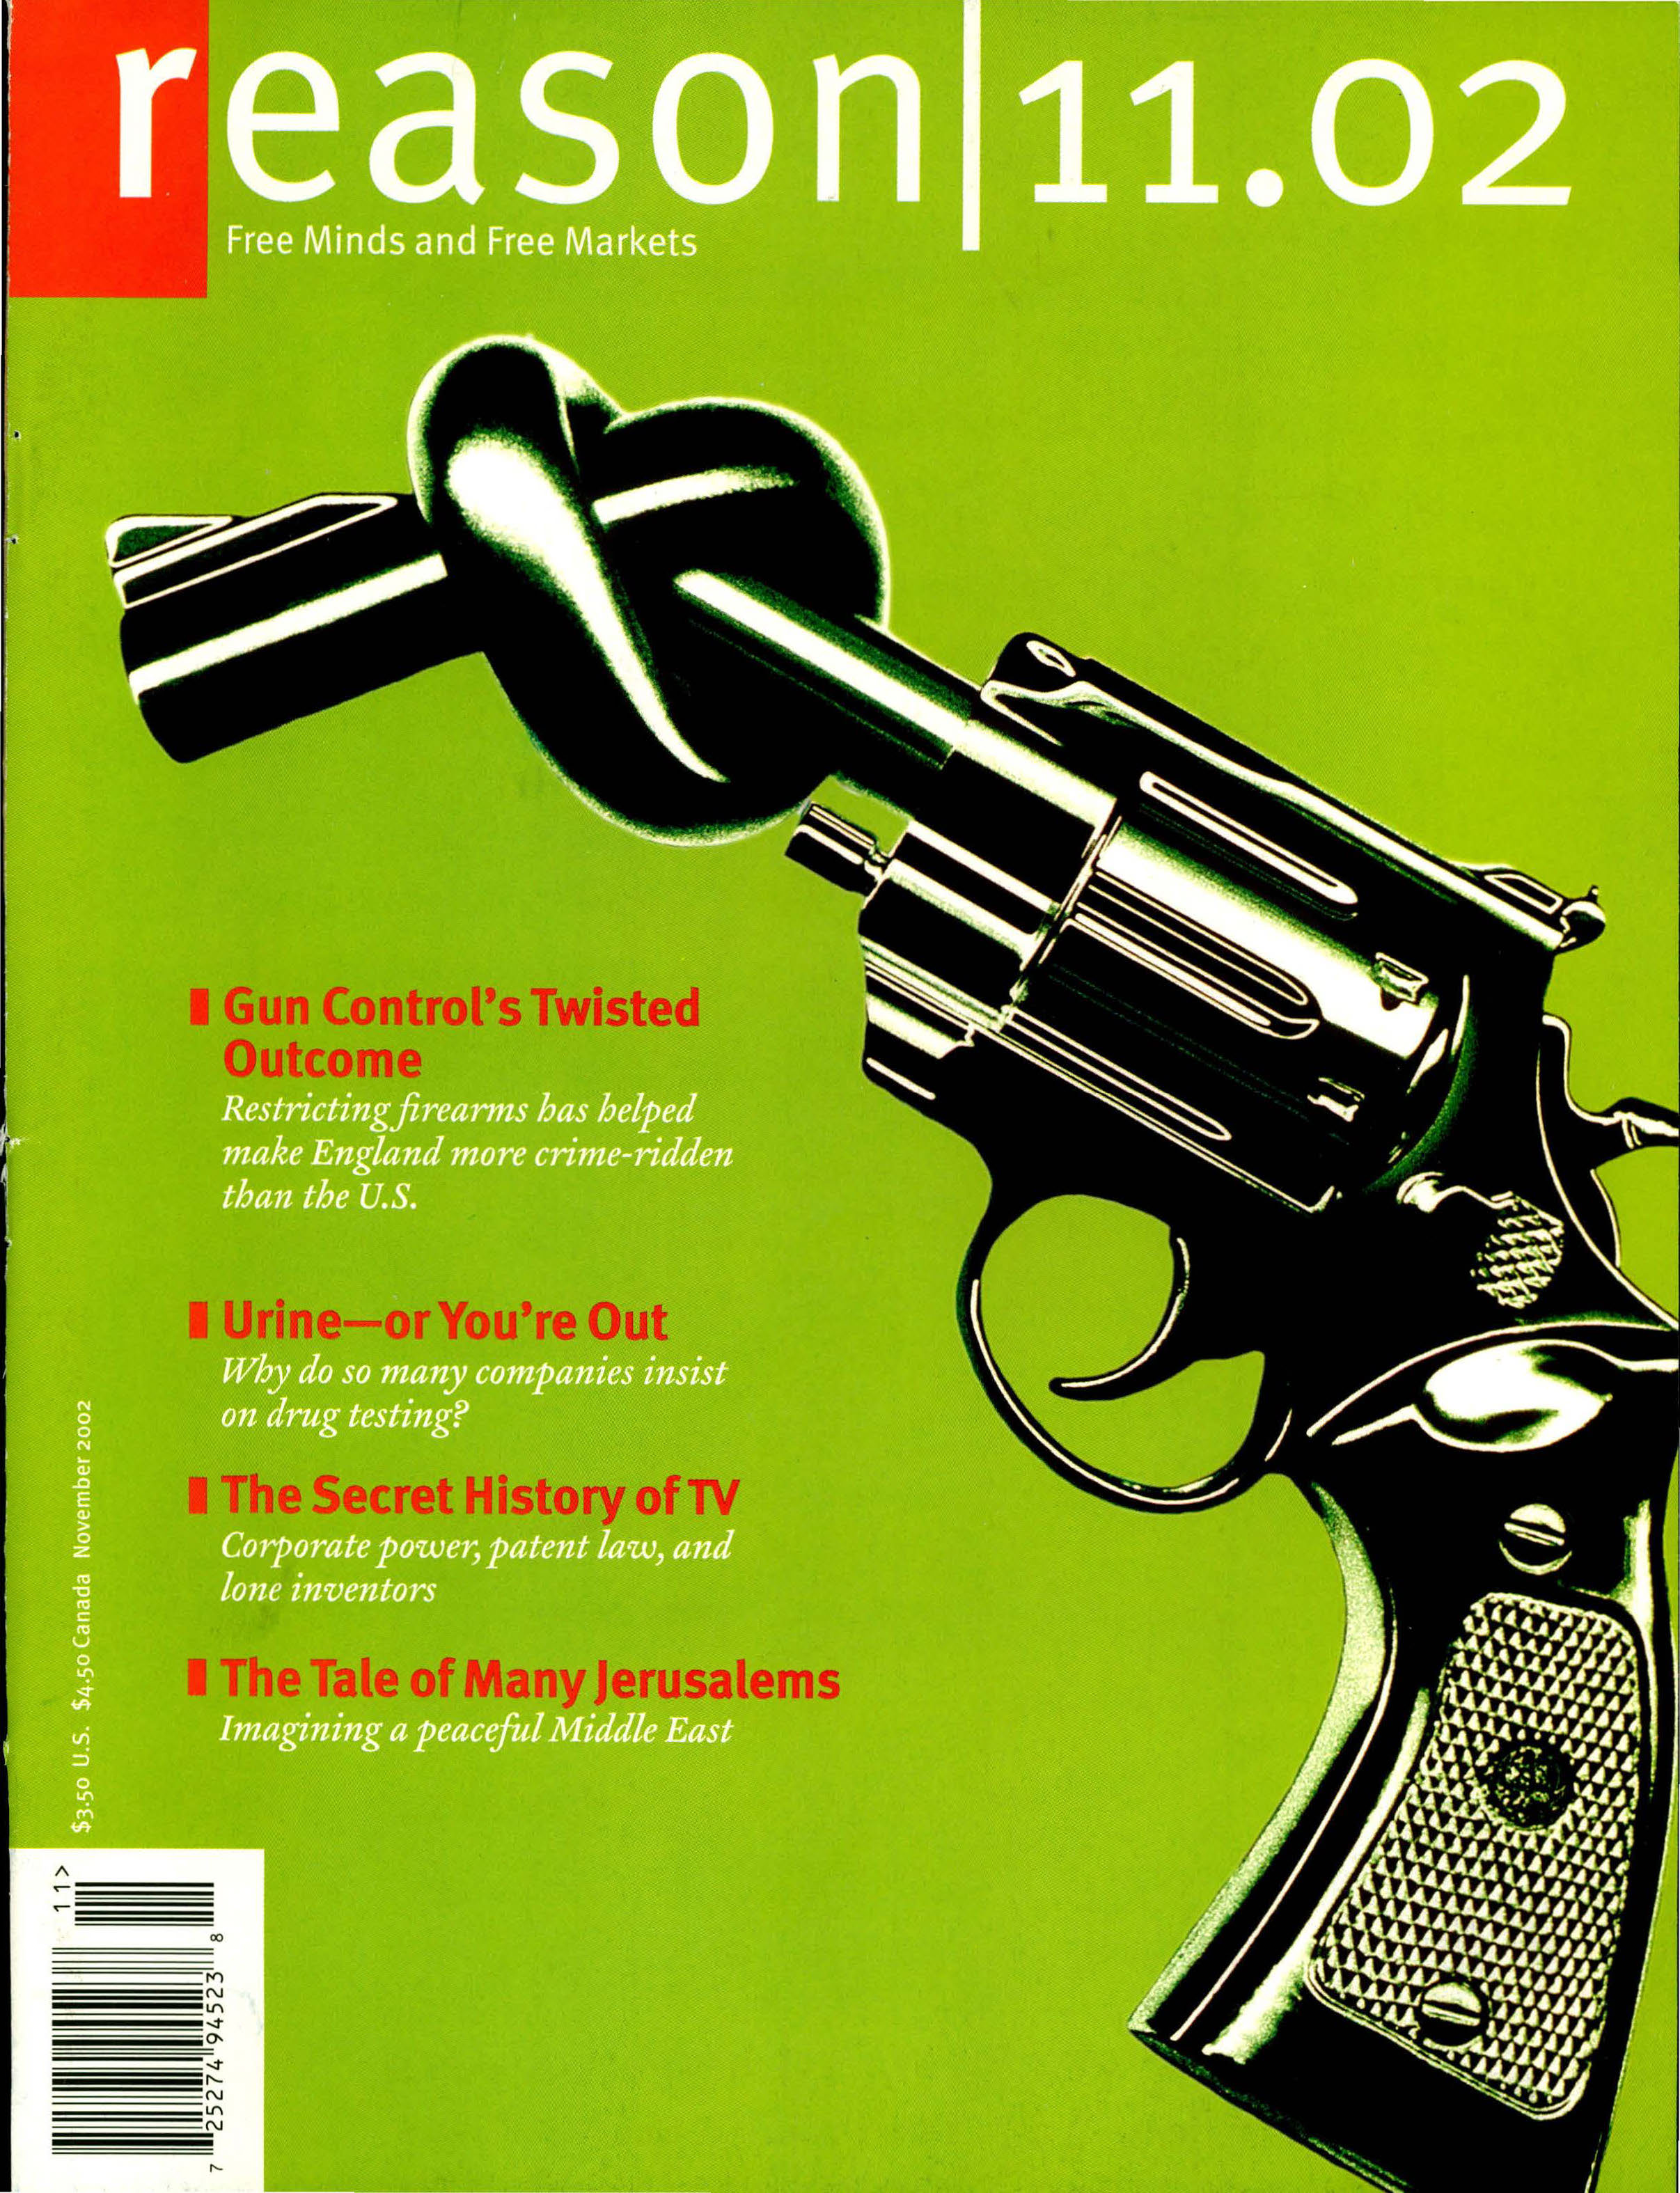 Reason Magazine, November 2002 cover image